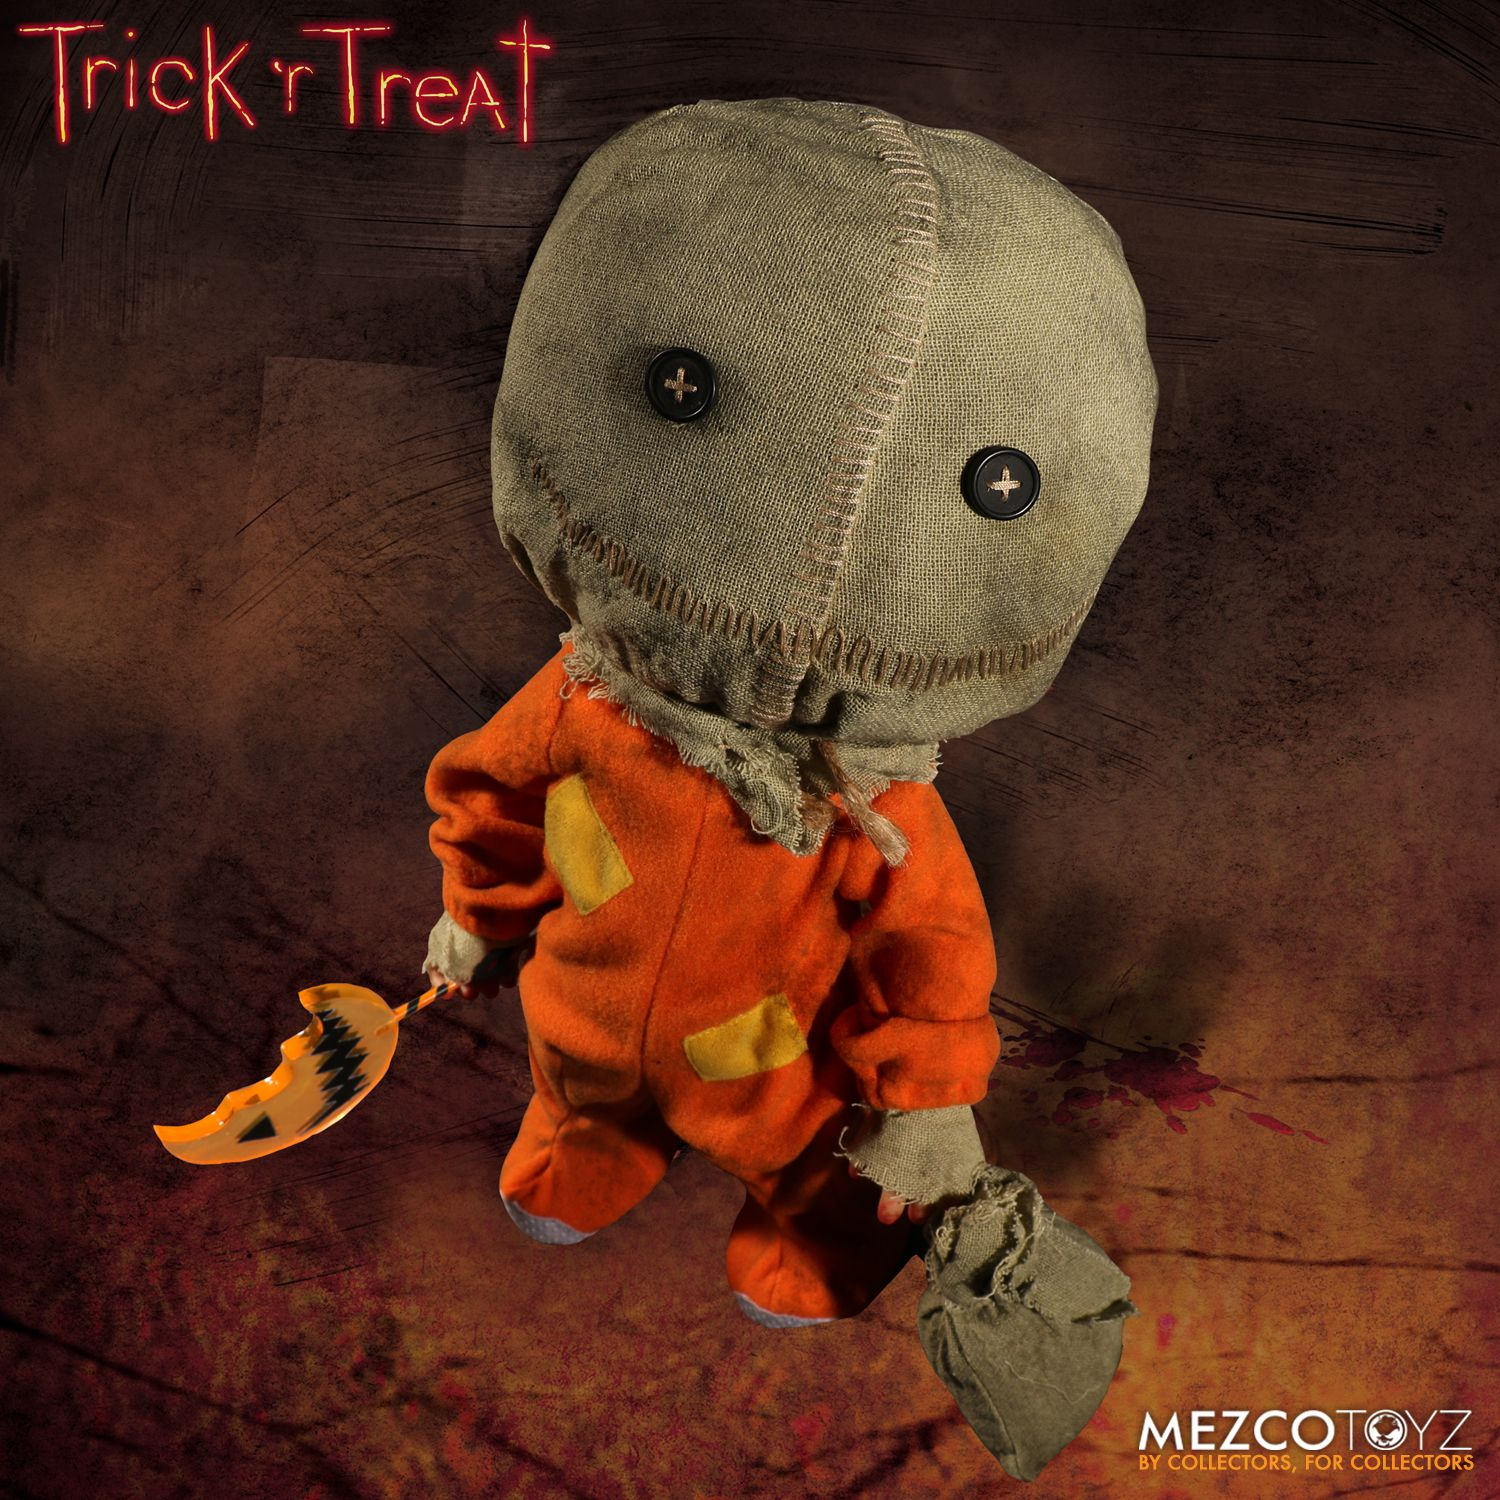 "Bring Sam Home With Mezco's New 15"" 'Trick 'r Treat' Doll ..."